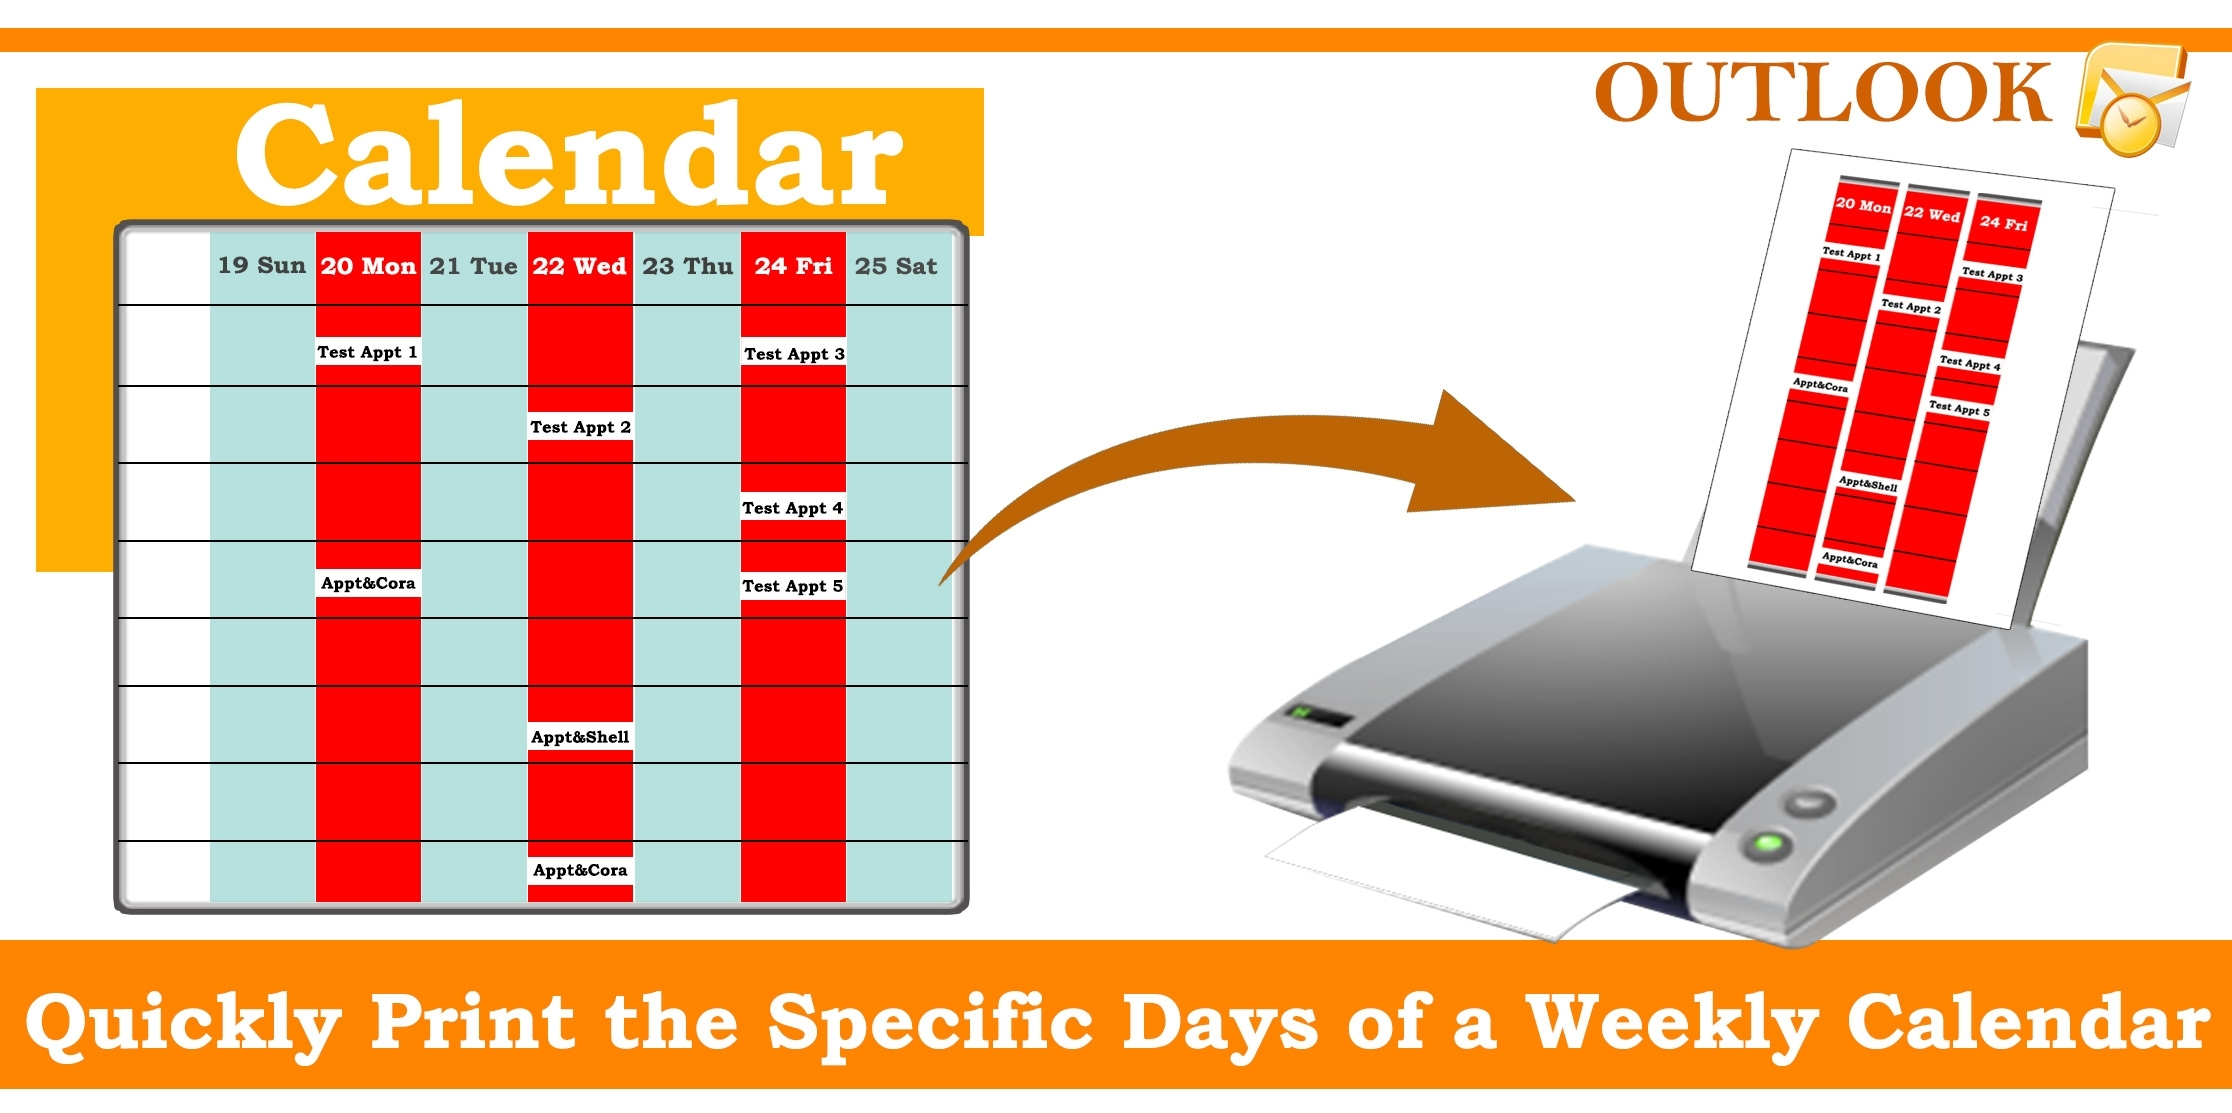 How To Quickly Print The Specific Days Of A Weekly Calendar